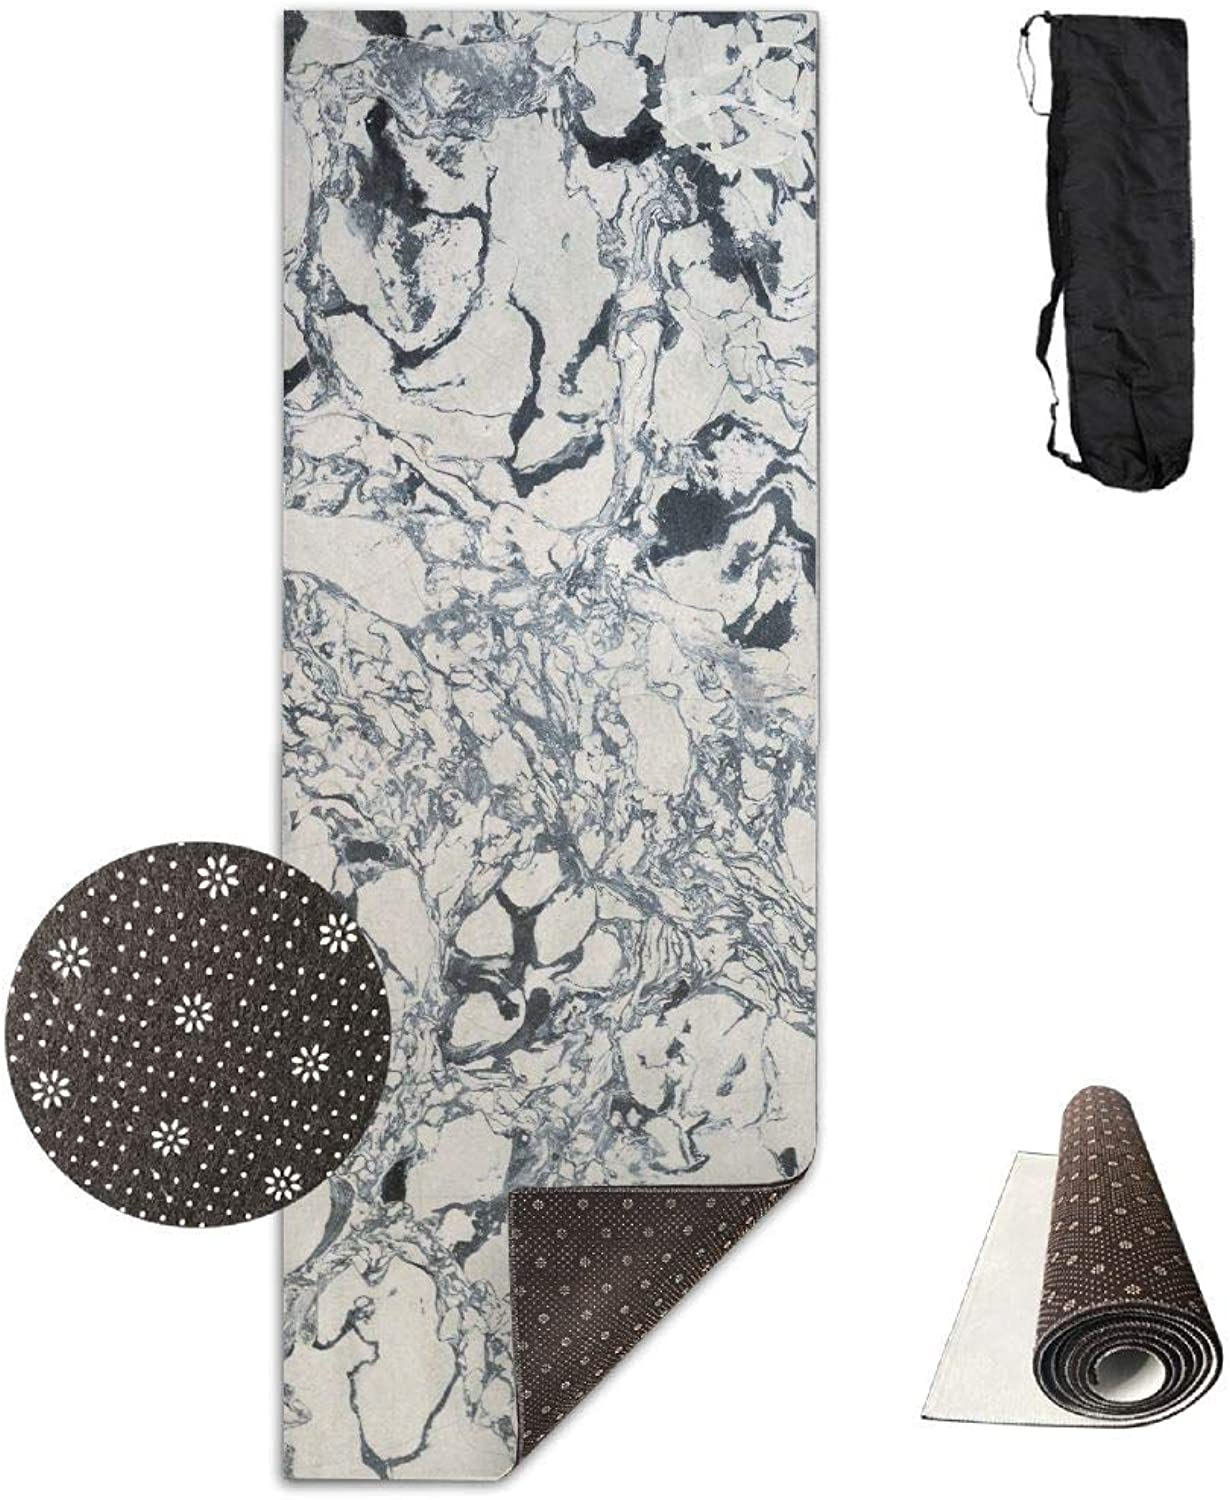 Black Marble Texture Yoga Mat  Advanced Yoga Mat  NonSlip Lining  Easy to Clean  LatexFree  Lightweight and Durable  Long 180 Width 61cm